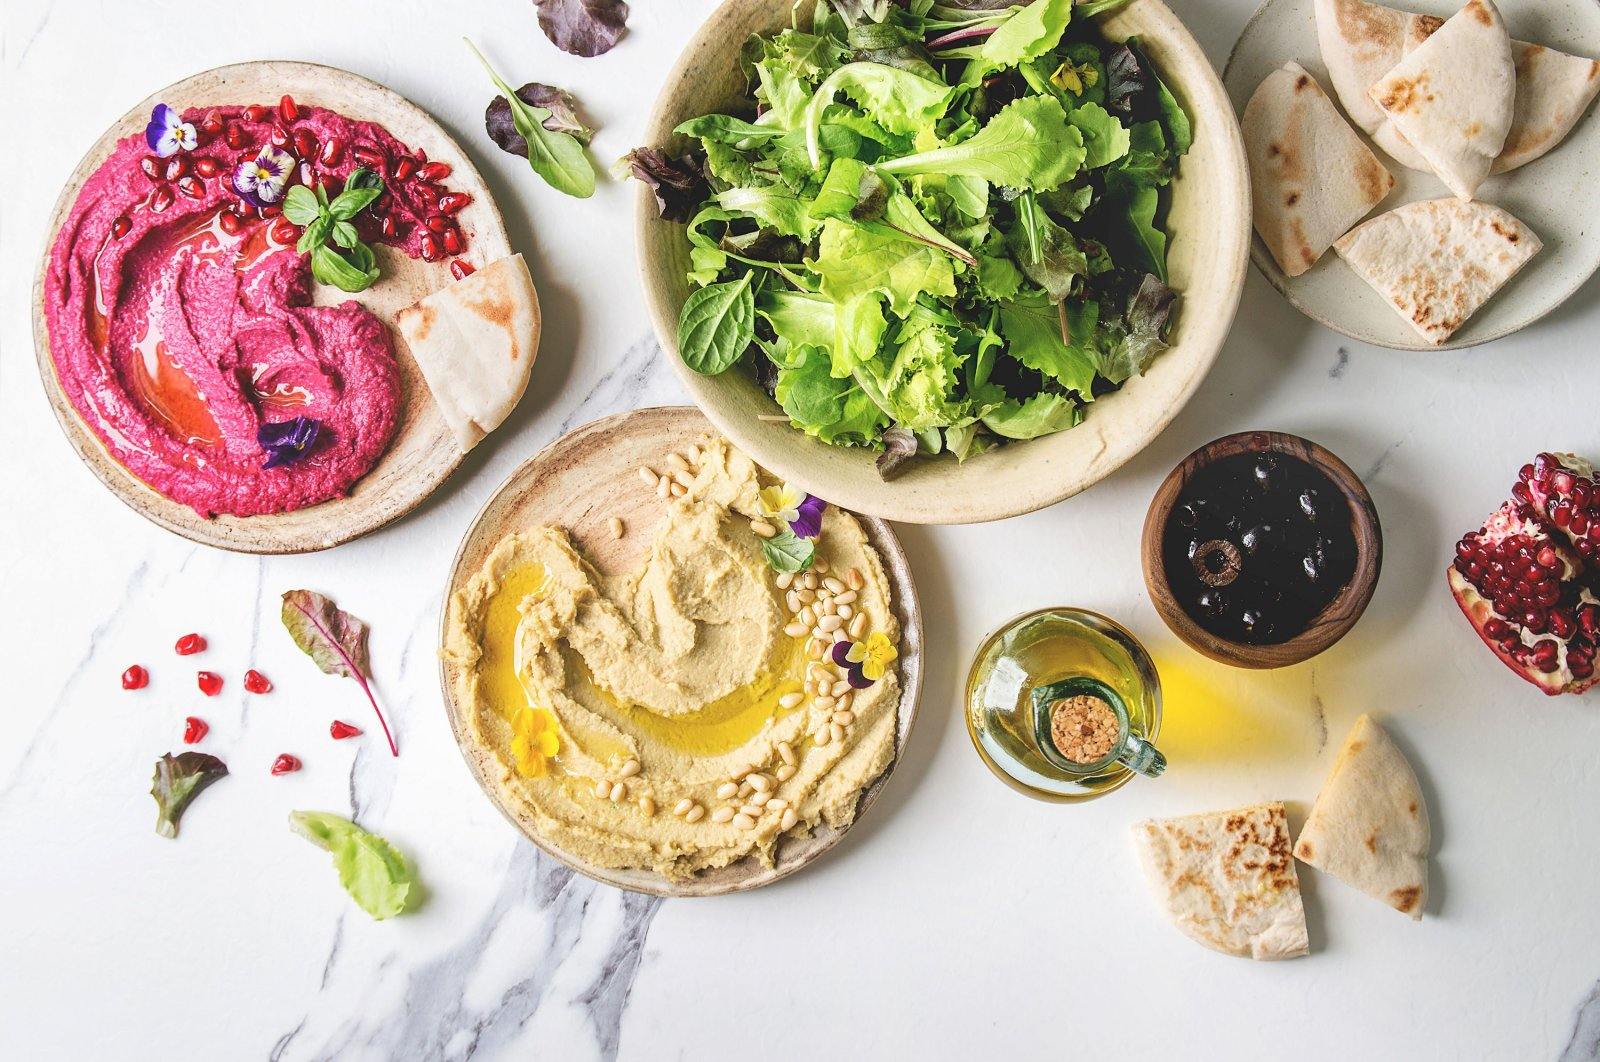 When you crave something colorful, try these variations of hummus. (Getty Images)